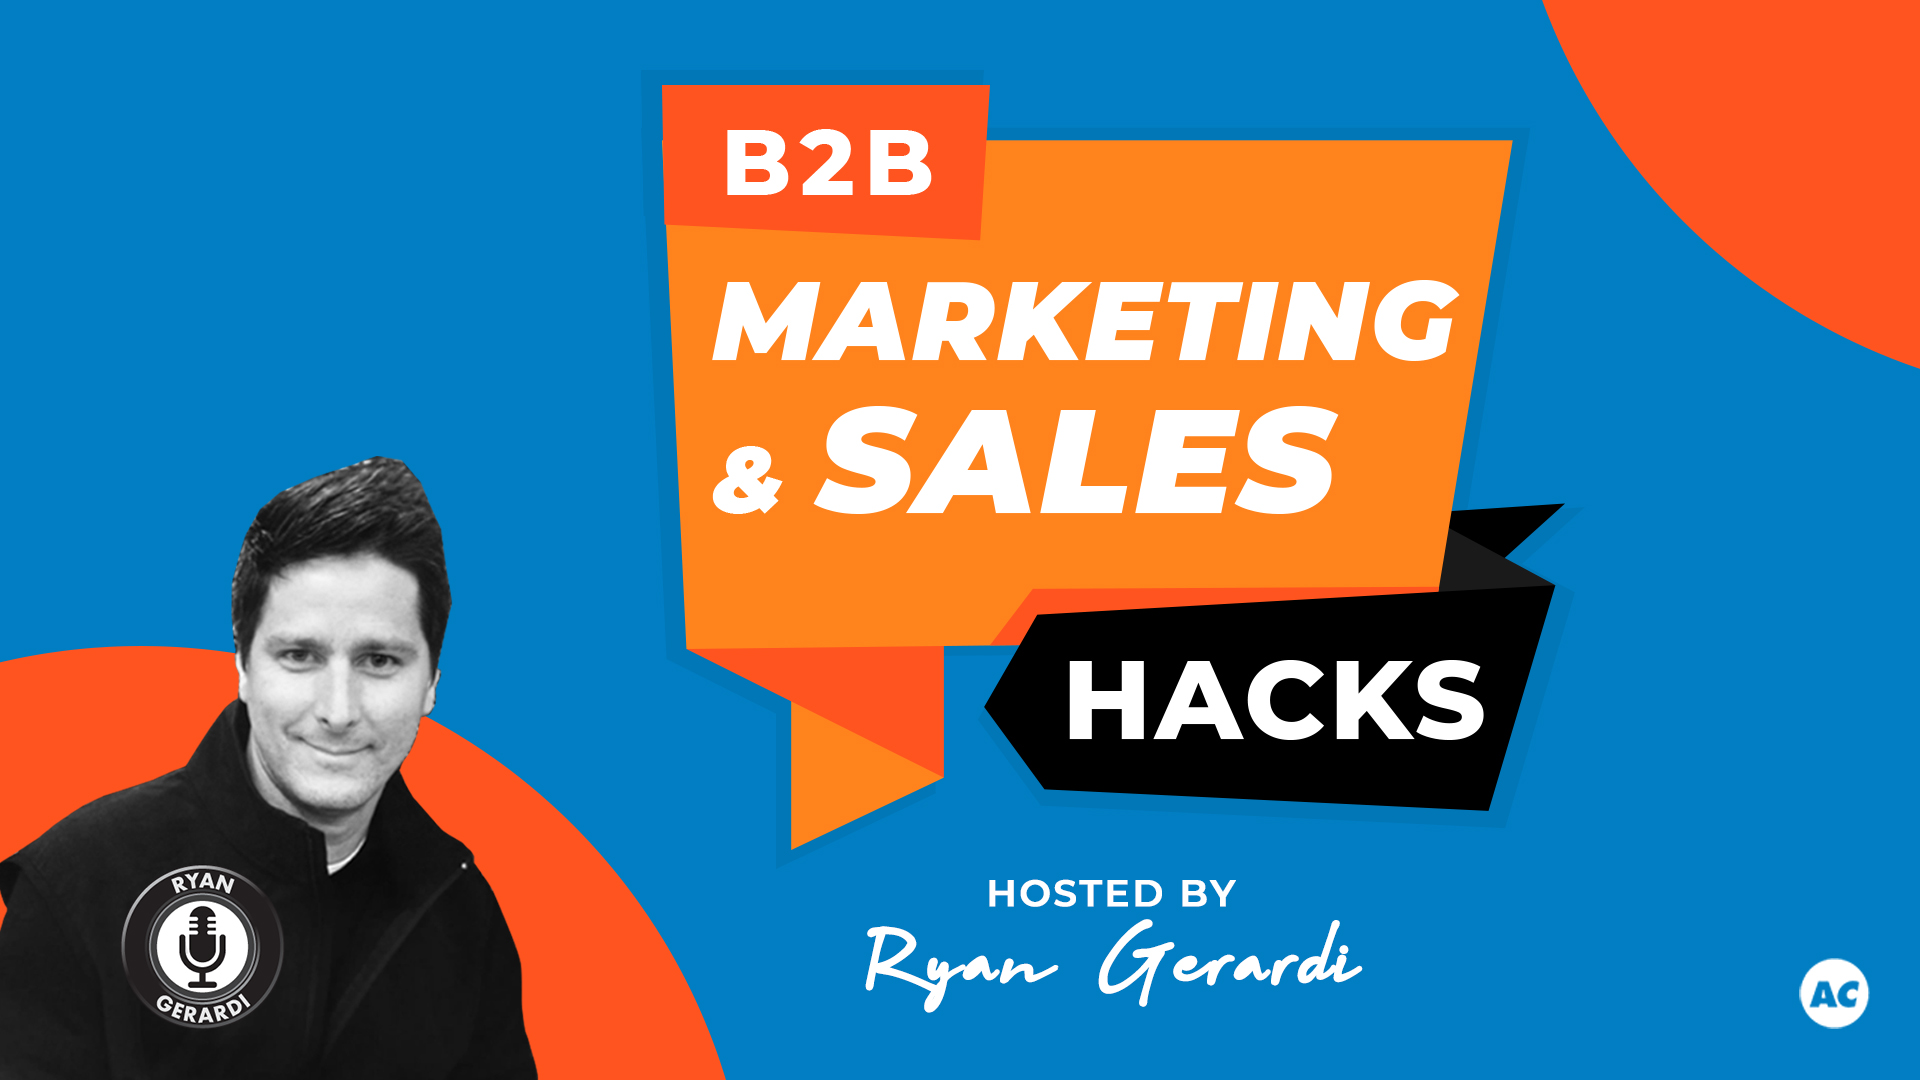 B2B Marketing and Sales Hacks with Ryan Gerardi